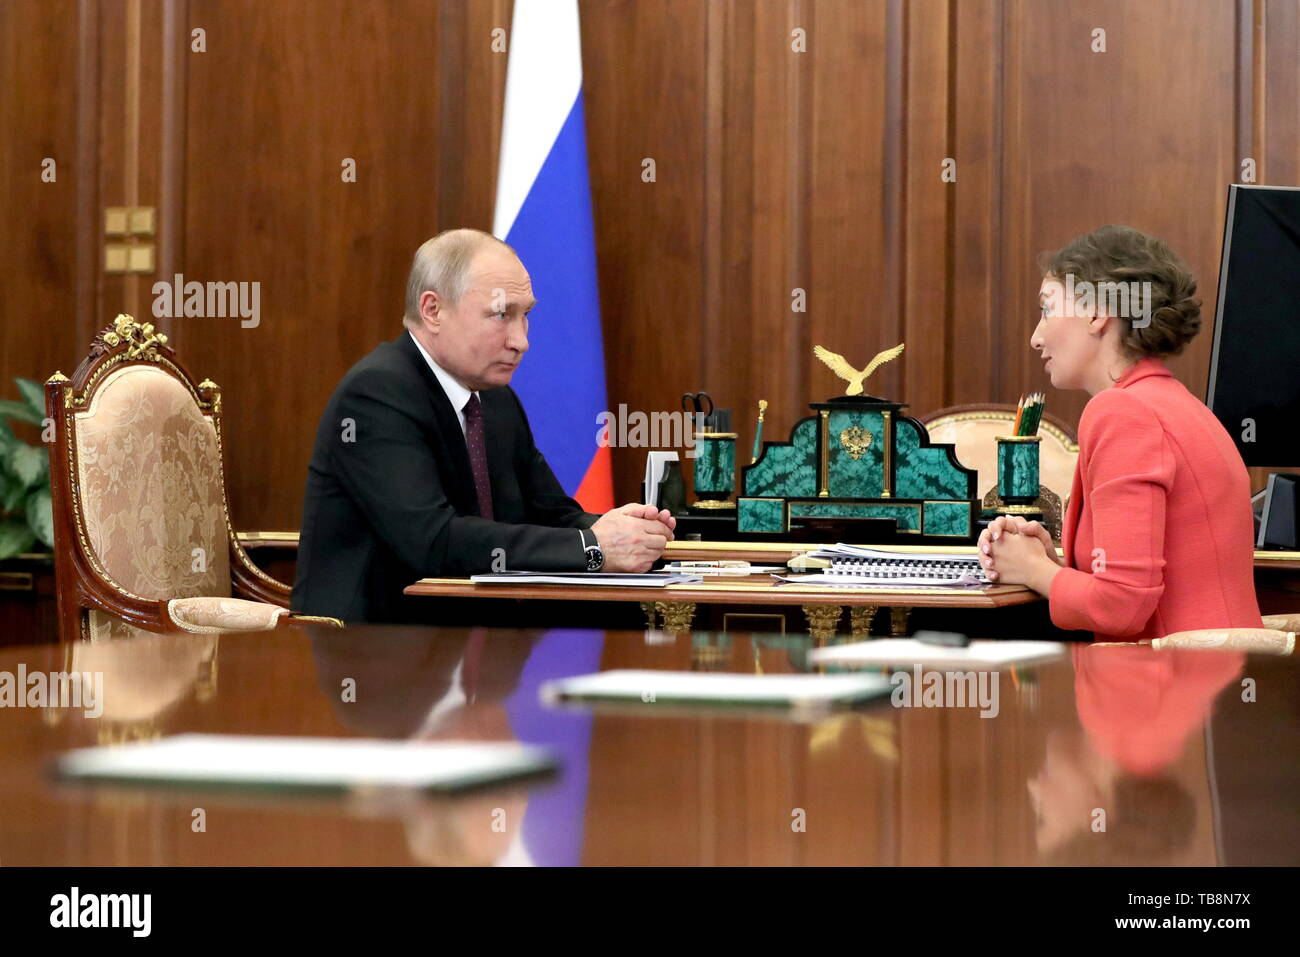 Moscow, Russia. 31st May, 2019. MOSCOW, RUSSIA - MAY 31, 2019: Russia's President Vladimir Putin (L) and Commissioner for Children's Rights Anna Kuznetsova during a meeting at the Moscow Kremlin. Mikhail Klimentyev/Russian Presidential Press and Information Office/TASS Credit: ITAR-TASS News Agency/Alamy Live News - Stock Image